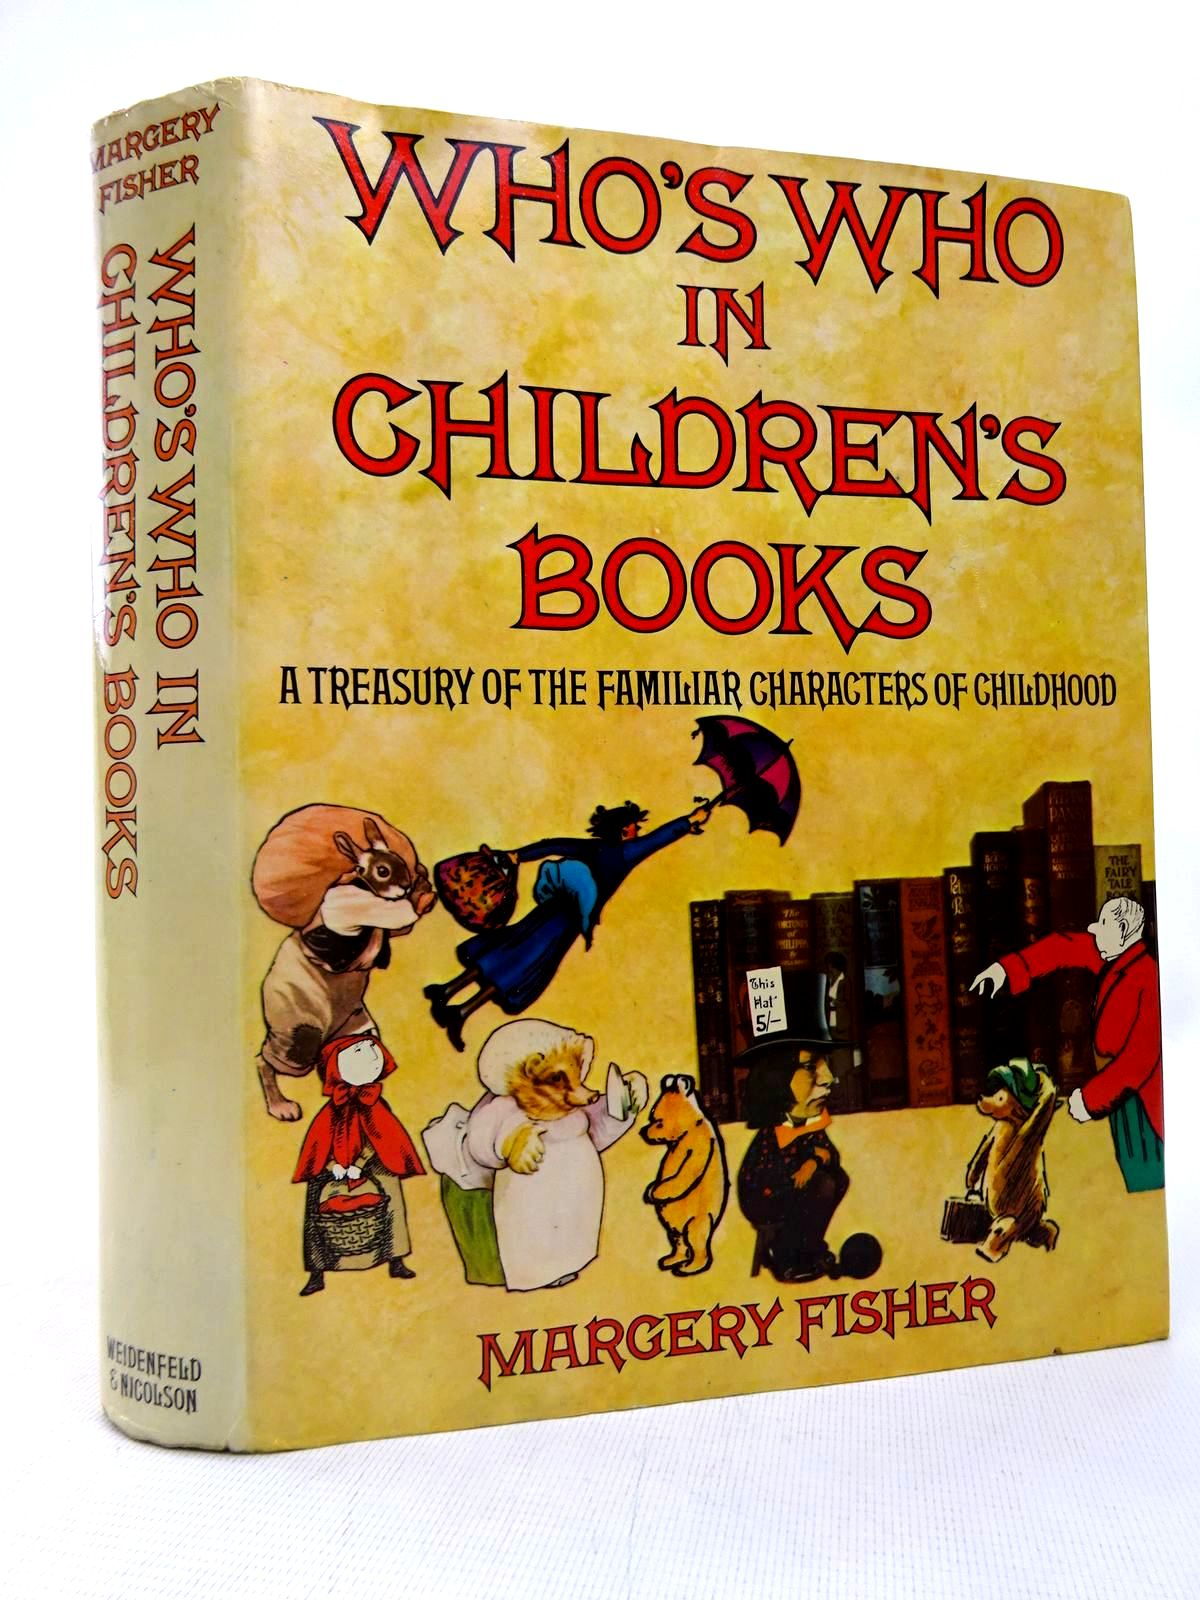 Photo of WHO'S WHO IN CHILDREN'S BOOKS A TREASURY OF THE FAMILIAR CHARACTERS OF CHILDHOOD